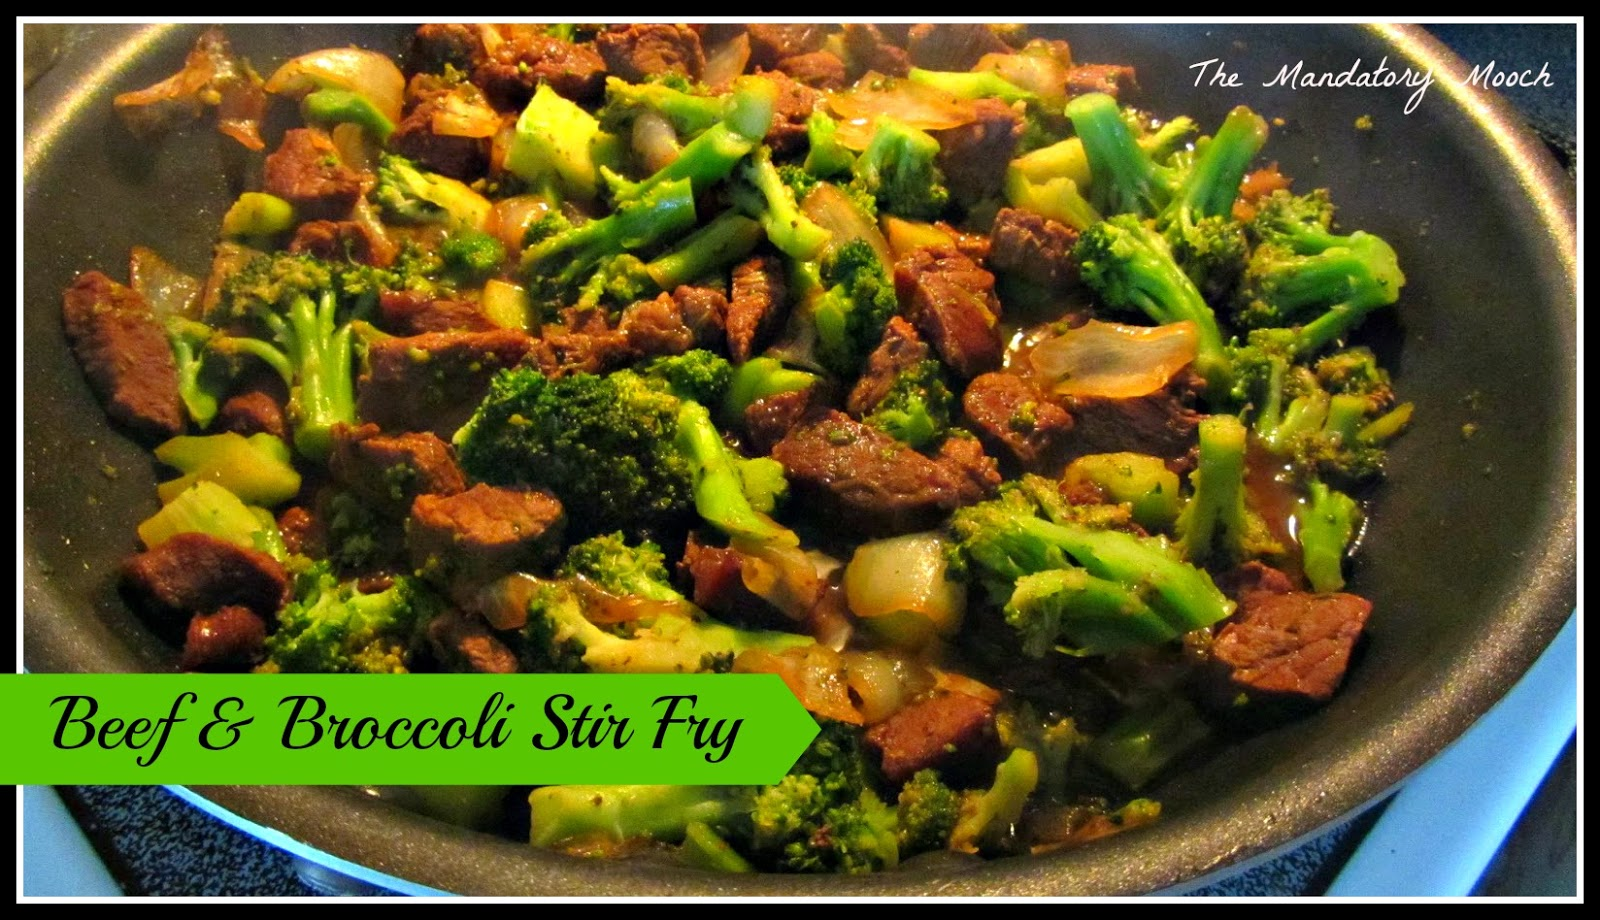 The Mandatory Mooch: Beef & Broccoli Stir Fry